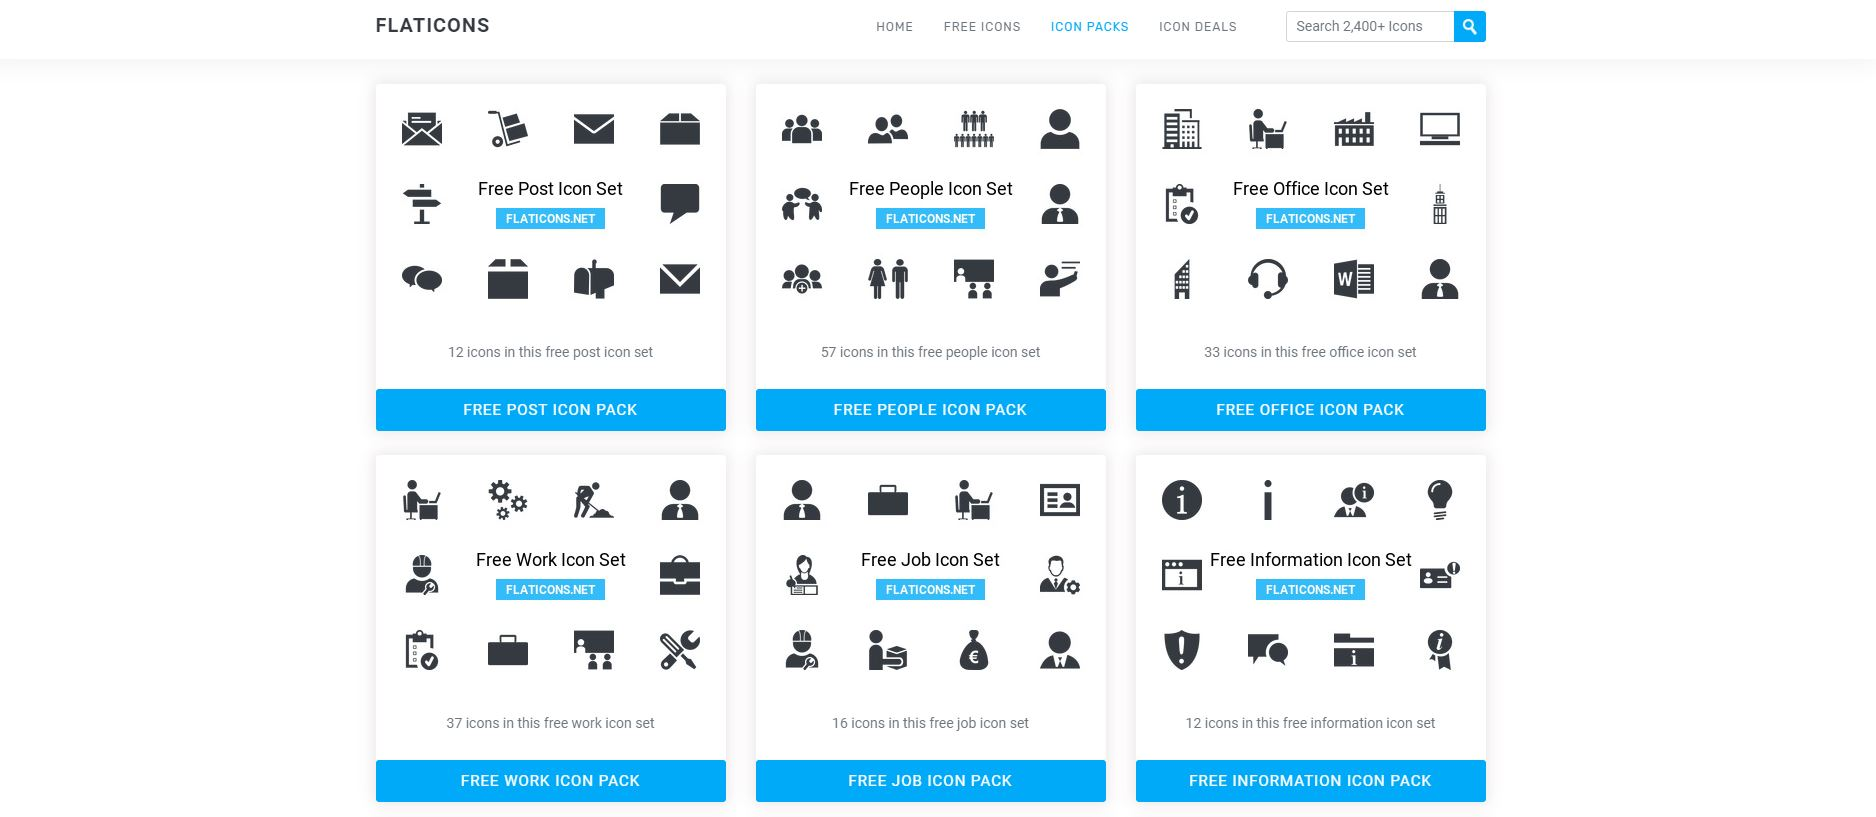 Vector icons - Flaticons 2020